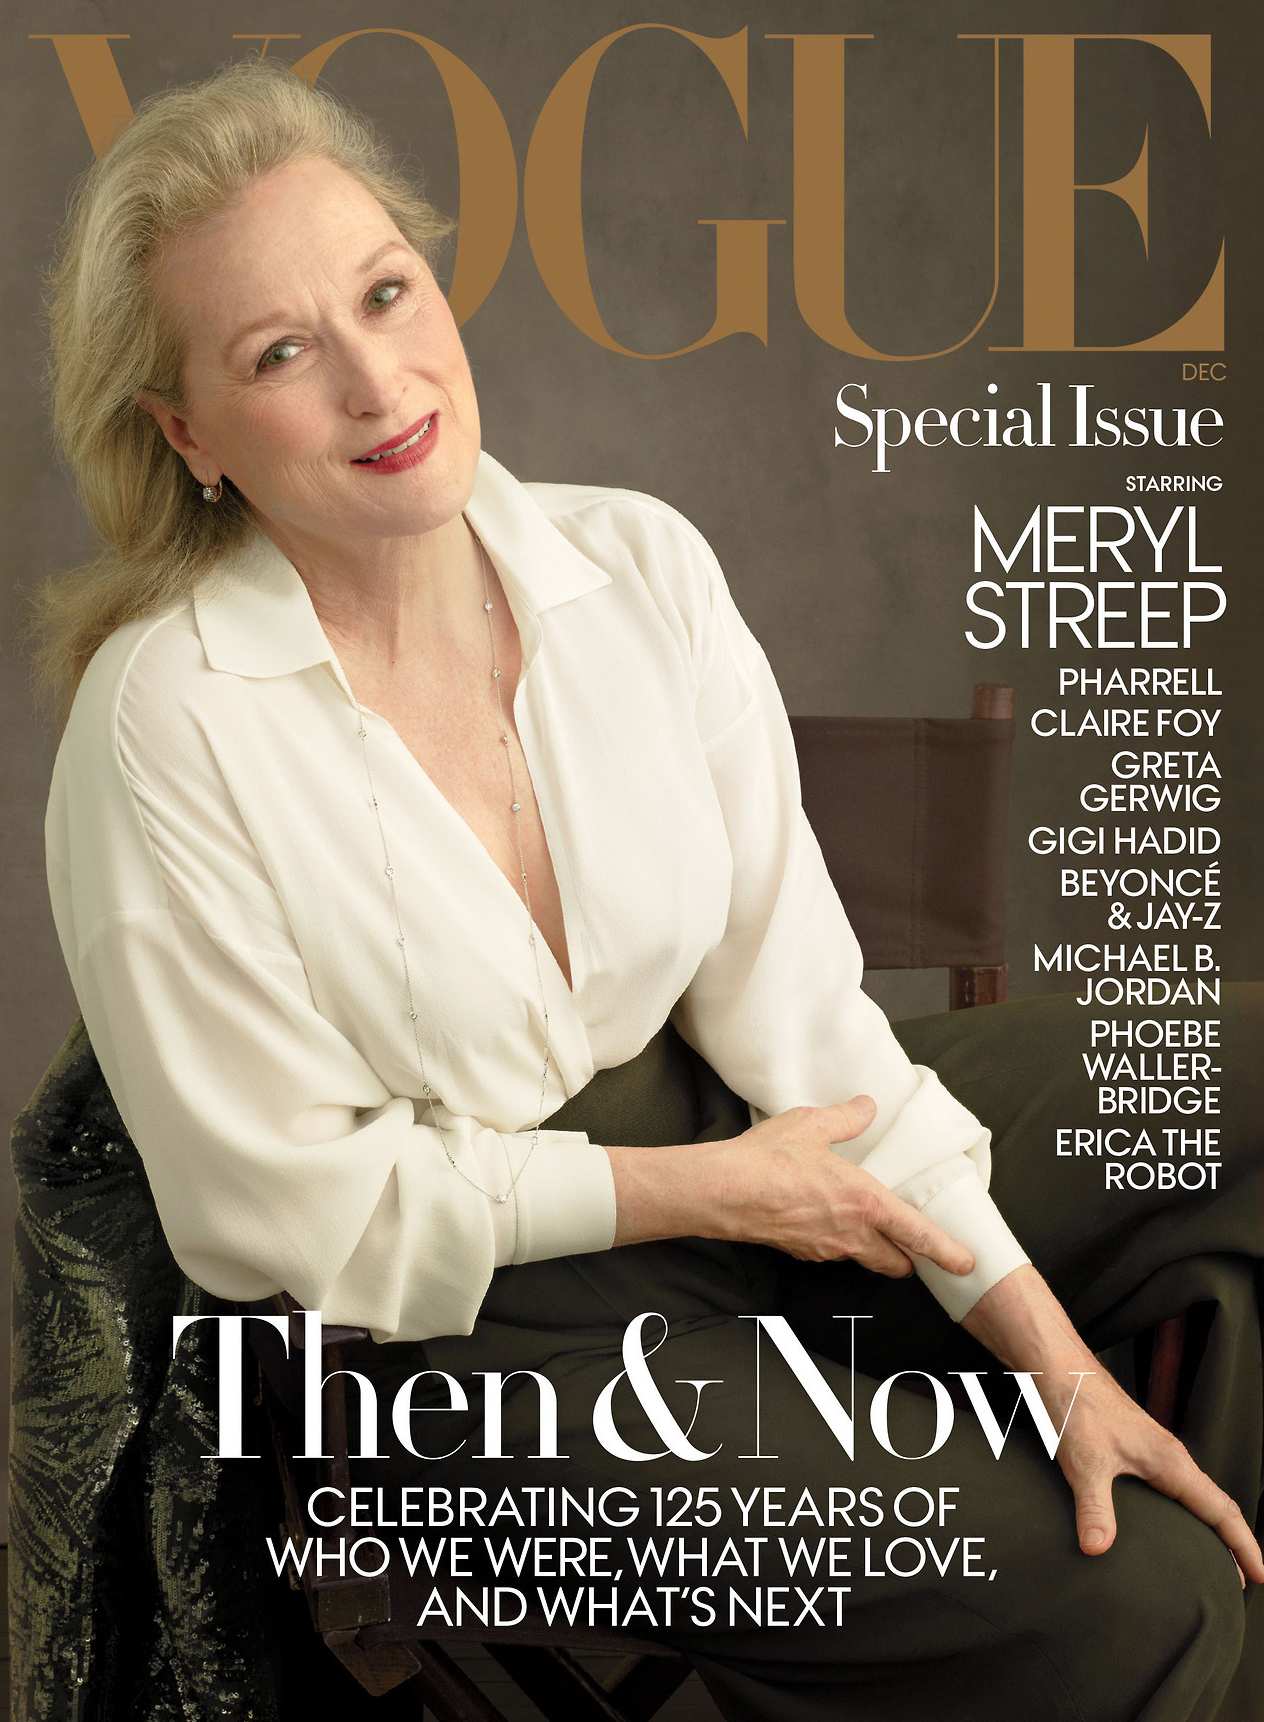 """<p>Meryl Streep has appeared on the cover of US <em><a href=""""https://www.vogue.com/article/meryl-streep-anna-wintour-interview-the-post-video"""" target=""""_blank"""" draggable=""""false"""">Vogue</a> </em>for the second time but it's her interview with Anna Wintour that is trending thanks to her comments on disgraced Hollywood producer Harvey Weinstein.</p> <p>Streep tells Wintour, the woman who inspired her character in <em><a href=""""https://style.nine.com.au/2016/06/27/09/40/streep-not-inspired-by-anna-wintour"""" target=""""_blank"""" draggable=""""false"""">The Devil Wears Prada</a></em>, that she has spoken with her three daughters Mamie Gummer, 34, Grace Gummer, 31, and Louisa Gummer, 26, about Weinstein's behaviour.</p> <p>""""Harvey Weinstein, that's all we talk about. It's horrible,"""" Streep <a href=""""https://www.vogue.com/article/meryl-streep-anna-wintour-interview-the-post-video"""" target=""""_blank"""" draggable=""""false"""">told Wintour</a>. """"We want them to be free, we want them to be proud, we want them to be female. You put them in danger by not informing them about the male gaze and how it works on young girls.""""</p> <p>Weinstein has been accused of sexual misconduct by more than 50 women includingCara Delevingne, Rose McGowan, Gwyneth Paltrow, andAngelina Jolie.</p> <p>The star of <em>The Iron Lady</em> and <em>Out of Africa</em> was photographed by Annie Liebovitz wearing Michael Kors to promote her latest film <em>The Post </em>for the December issue of US <em>Vogue.</em></p> <p>The last time Streep appeared on the cover of fashion's bible was in 2012.</p> <p>Take a look back at some of Streep's most stylish appearances.</p> <p></p> <p></p> <p></p> <p></p> <p></p>"""